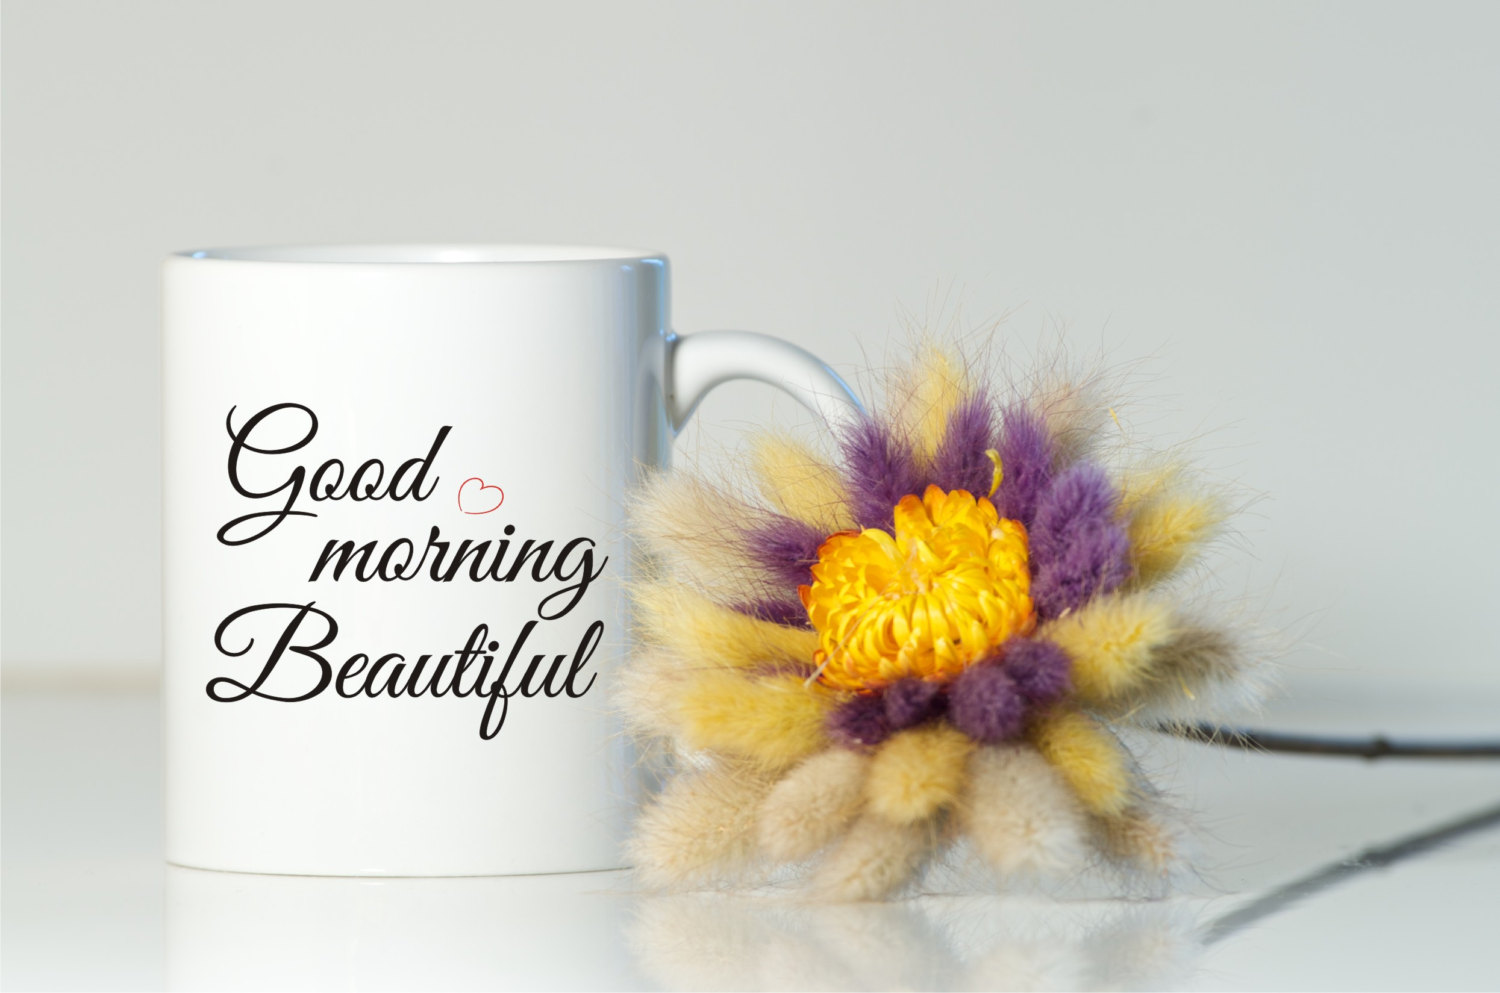 Good Morning Message In German : Good morning wishes for girlfriend pictures images page